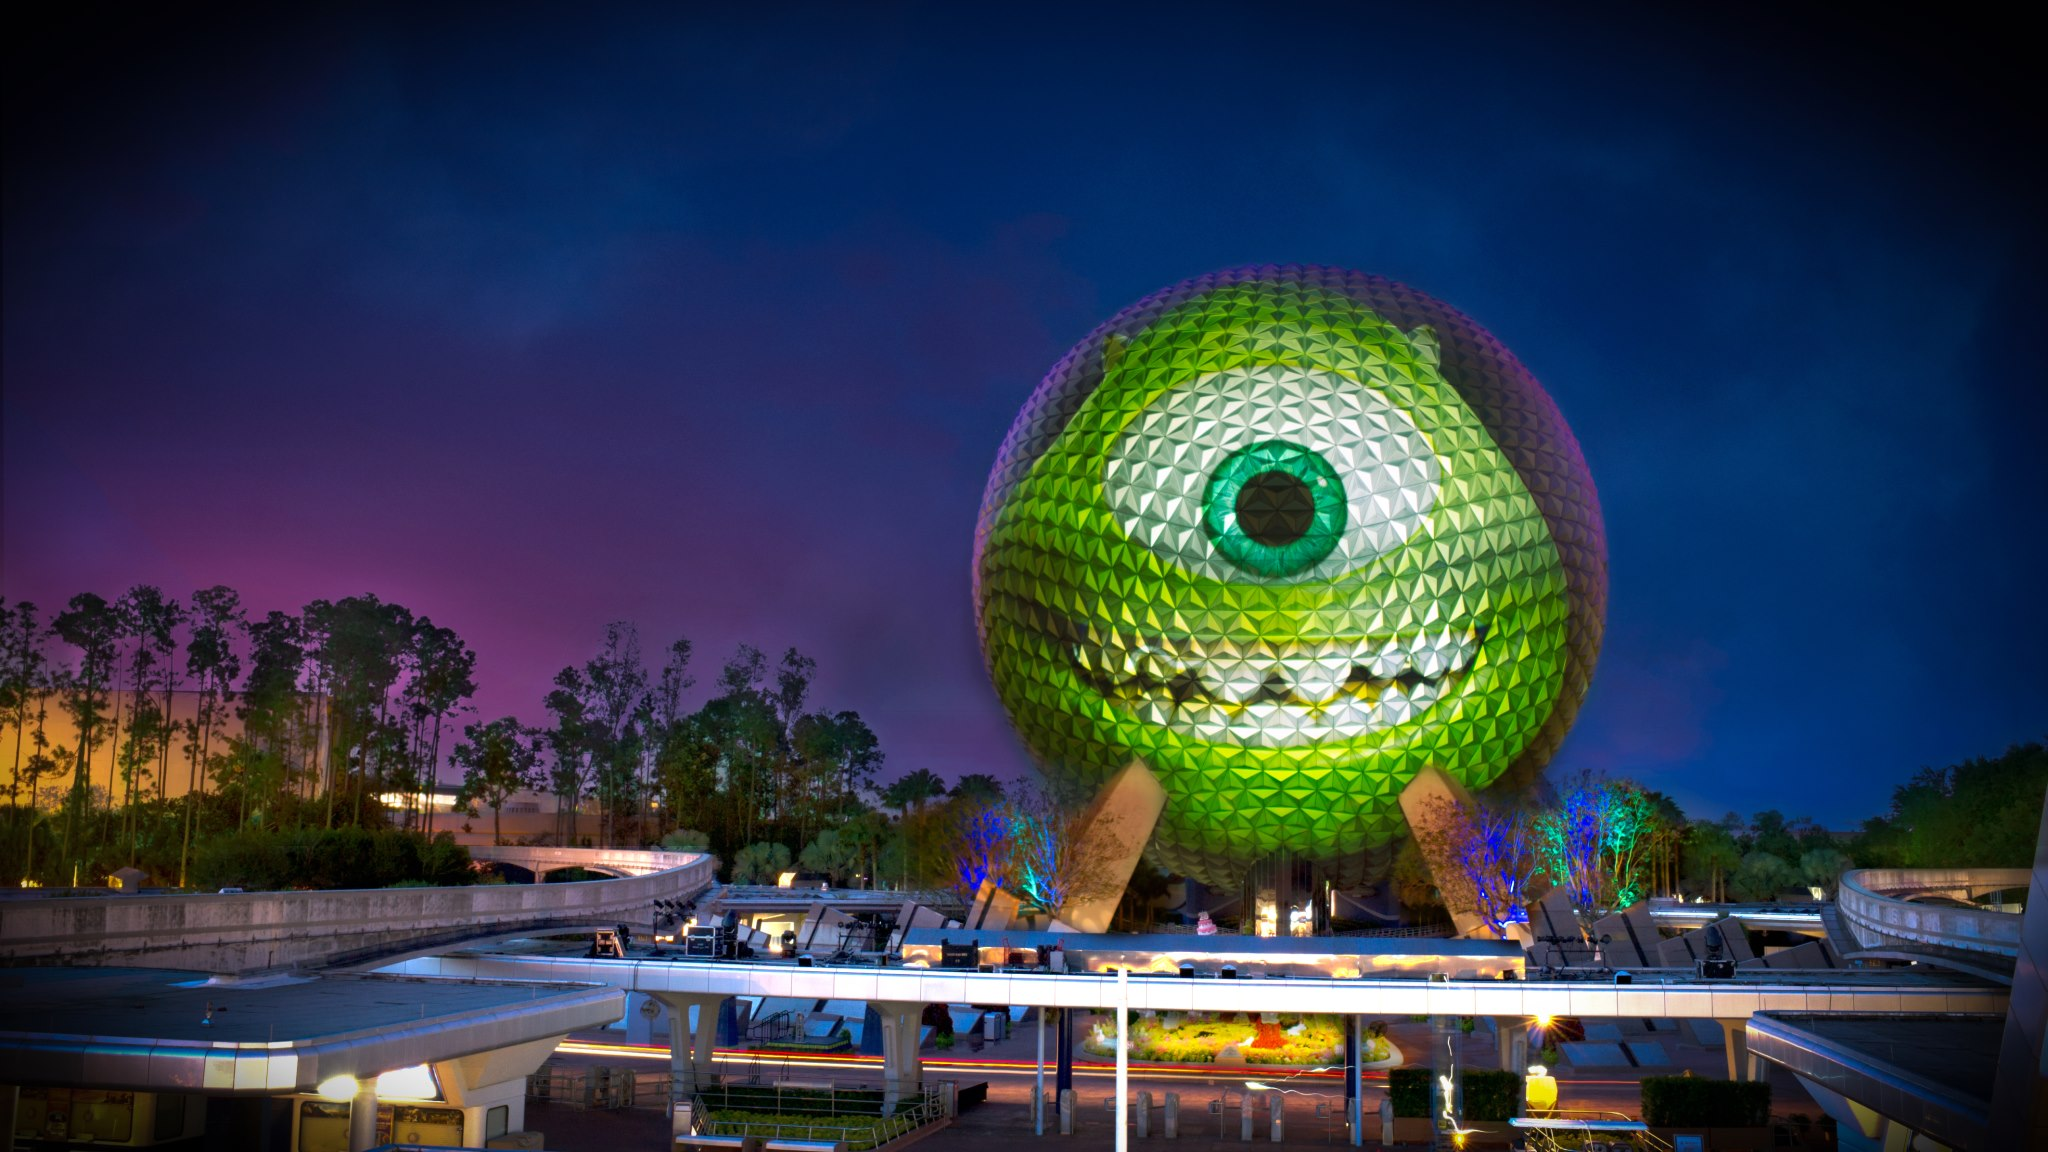 Spaceship Earth - Mike Wazowski 2